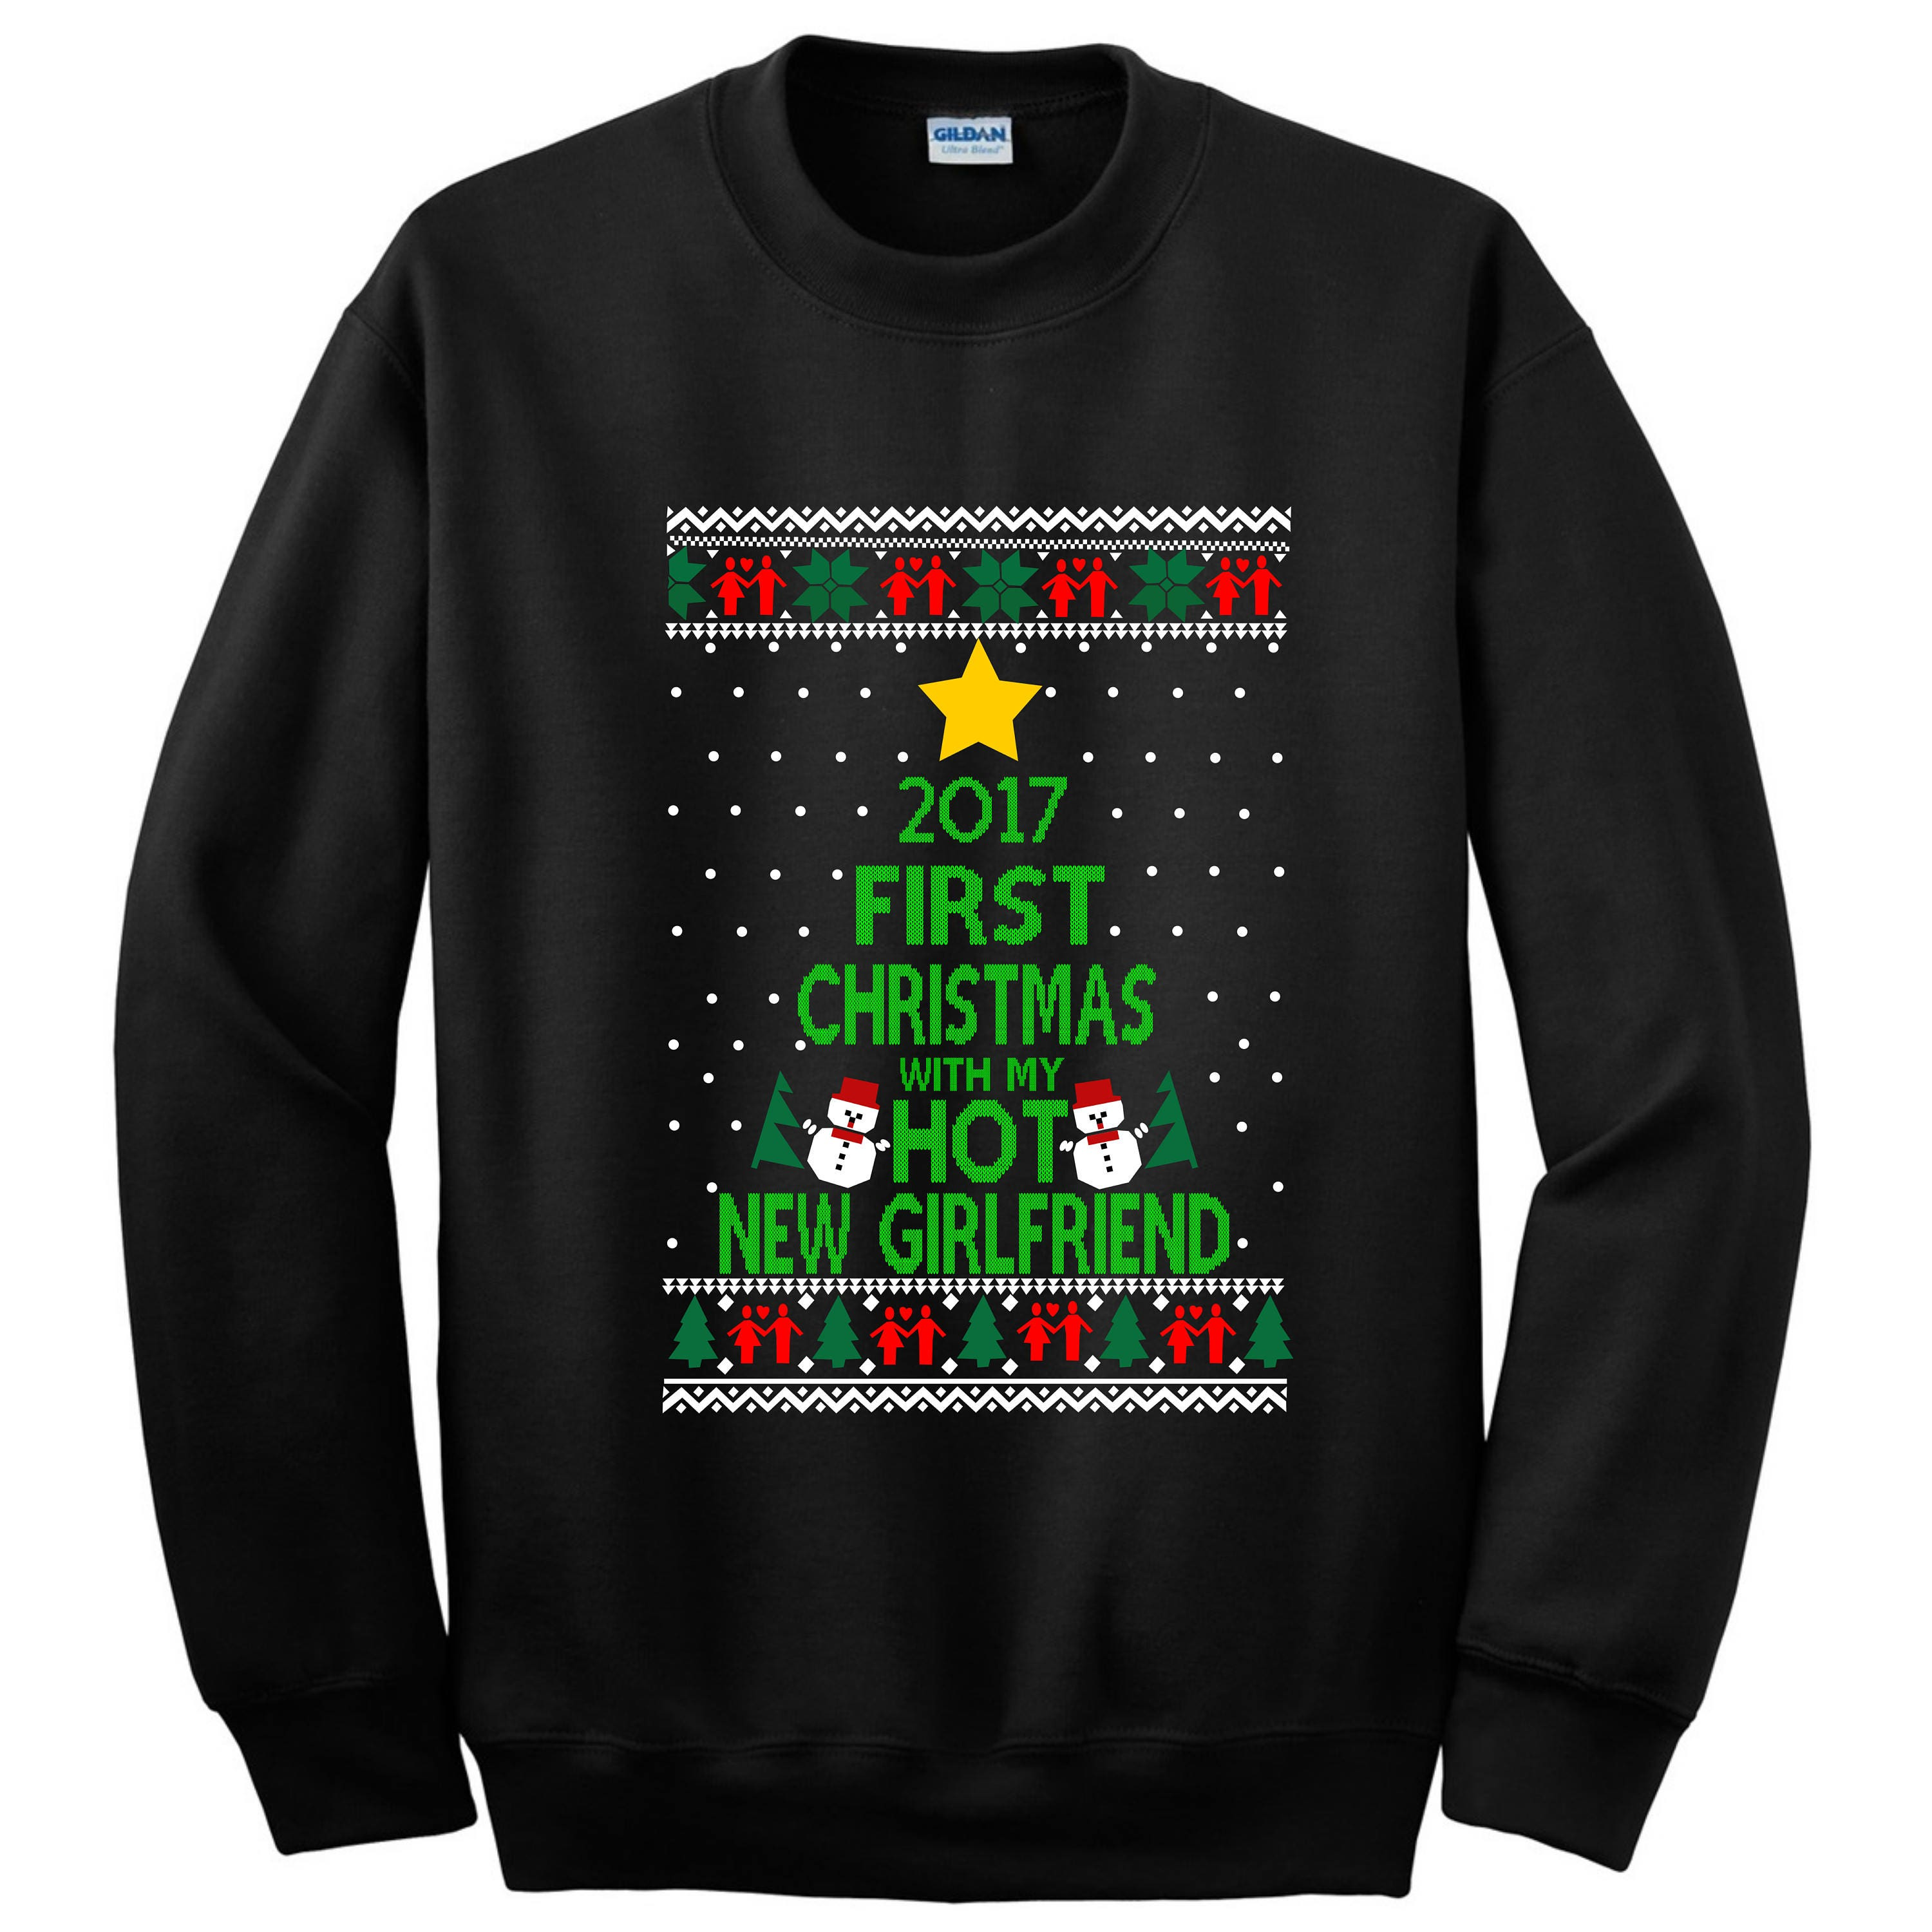 Ugly sweater ugly christmas sweater snowman Girlfriend